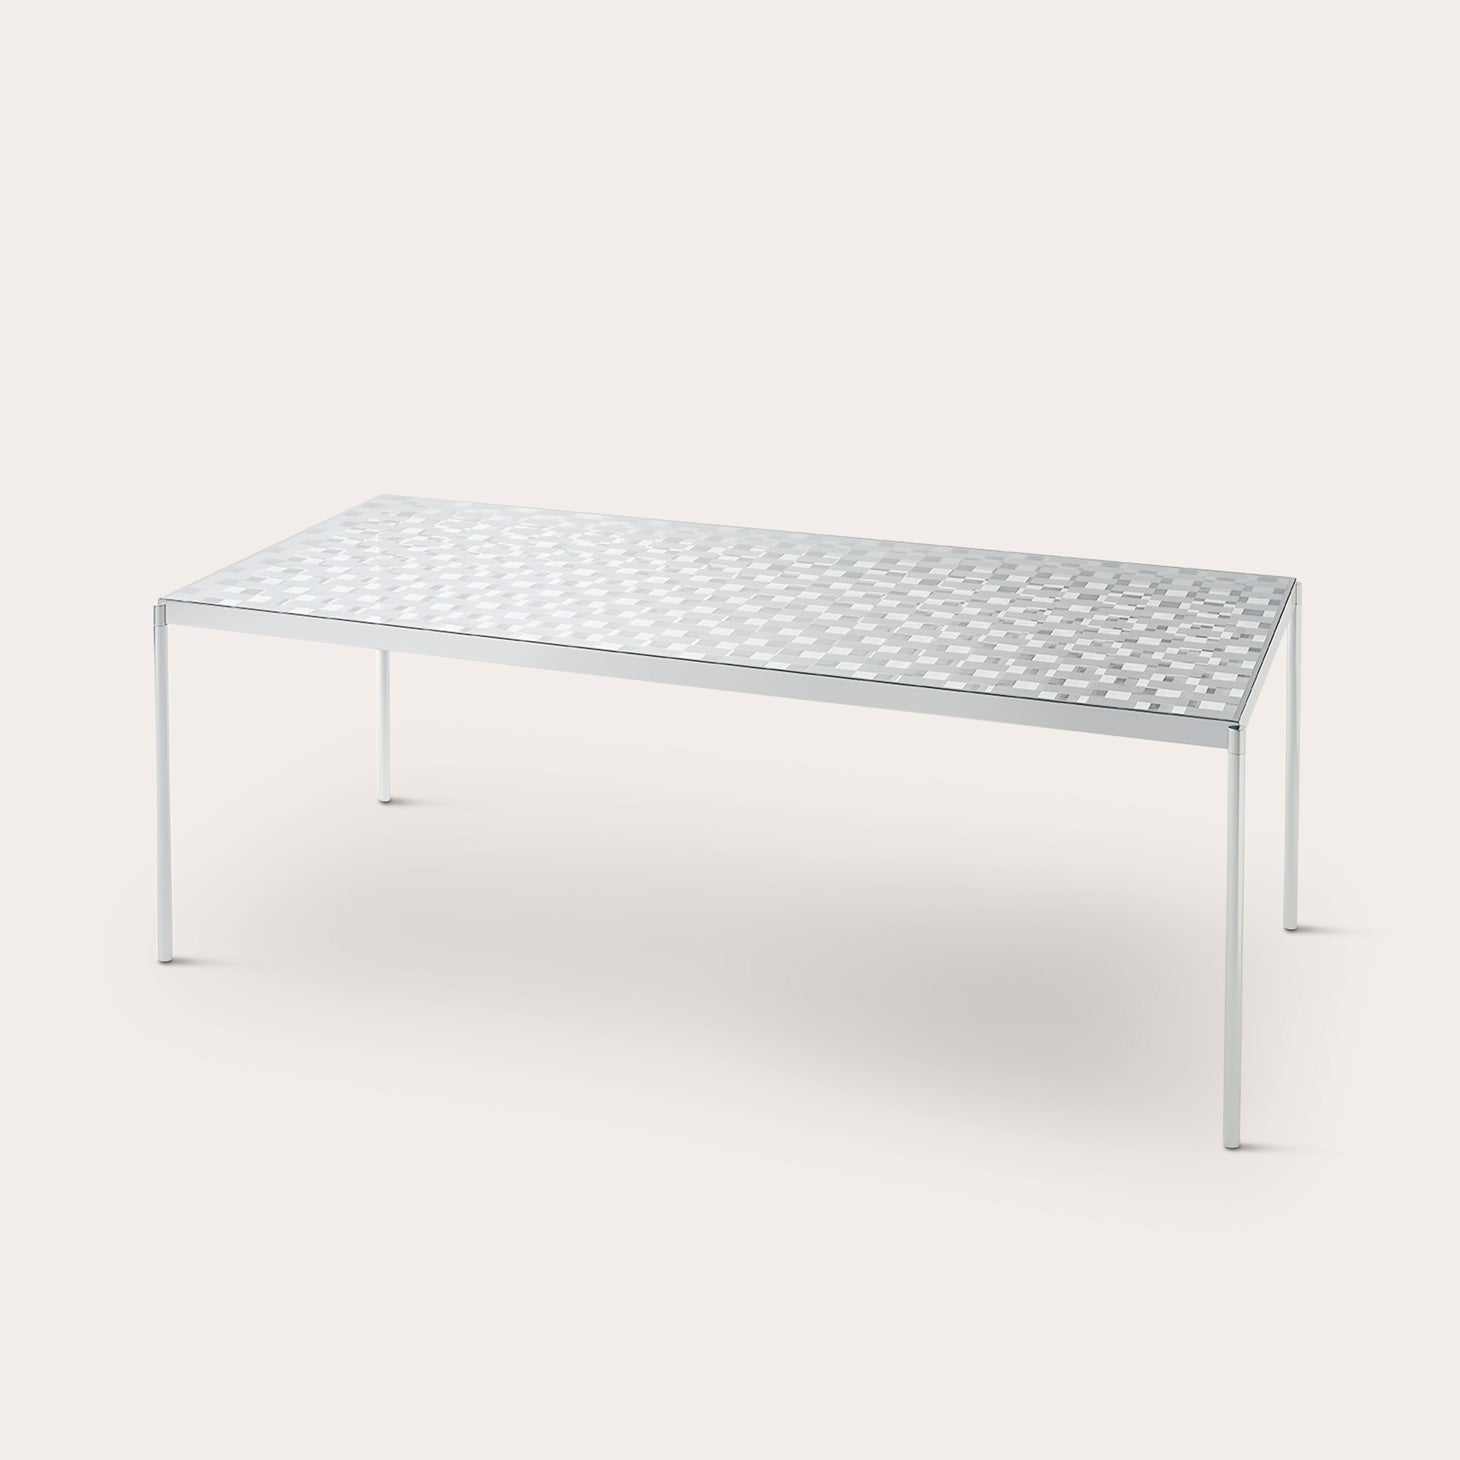 Fragment Tables Nendo Designer Furniture Sku: 288-100-10113